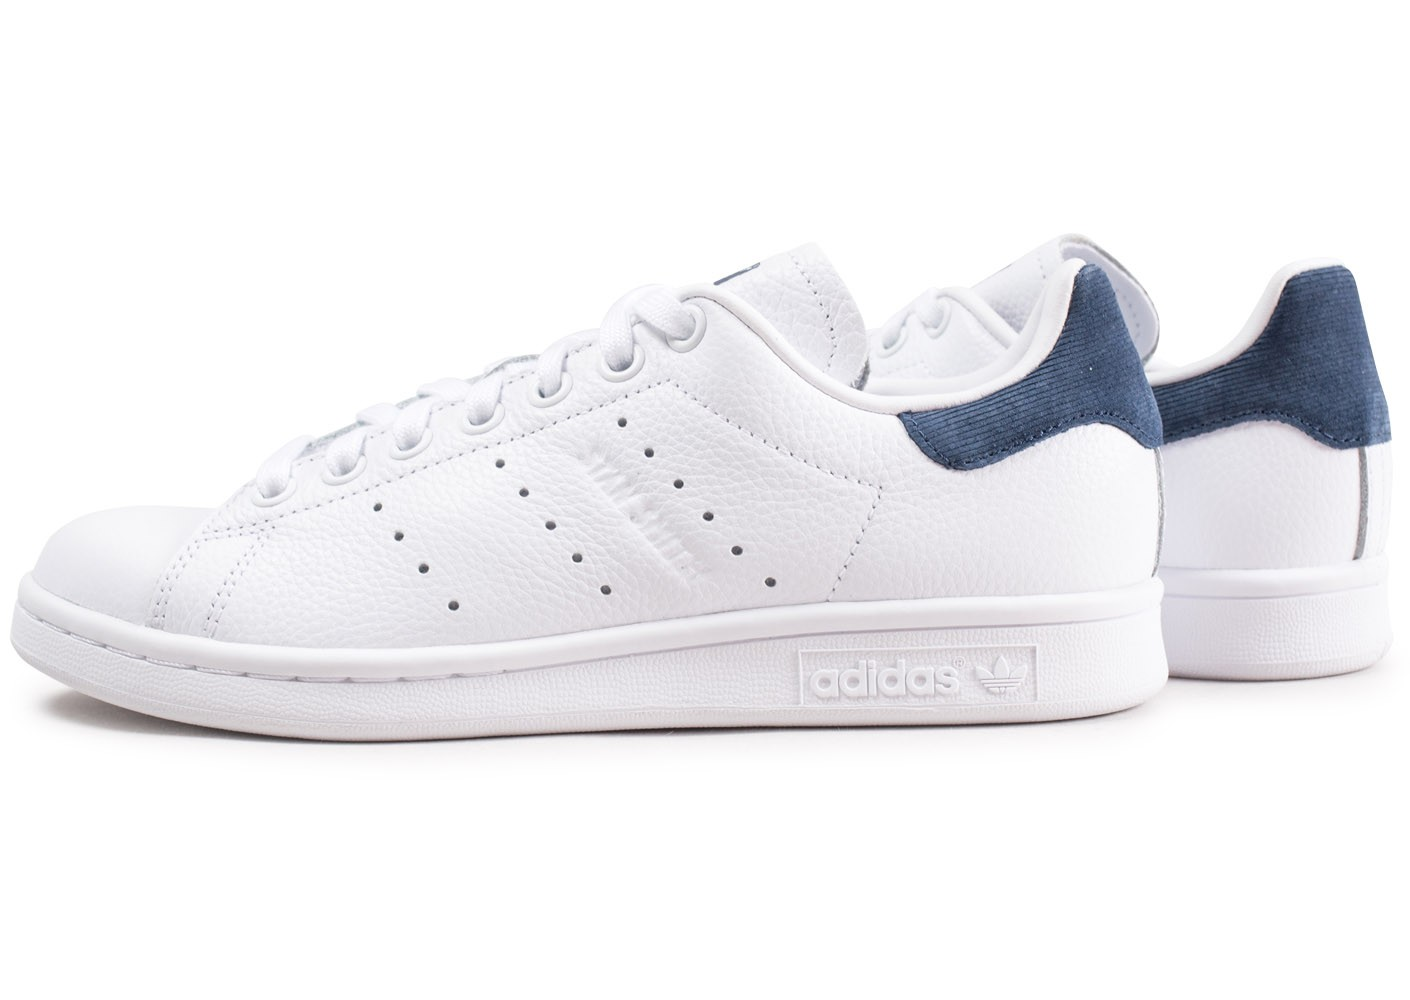 adidas Stan Smith blanche et bleue femme - Chaussures adidas ...